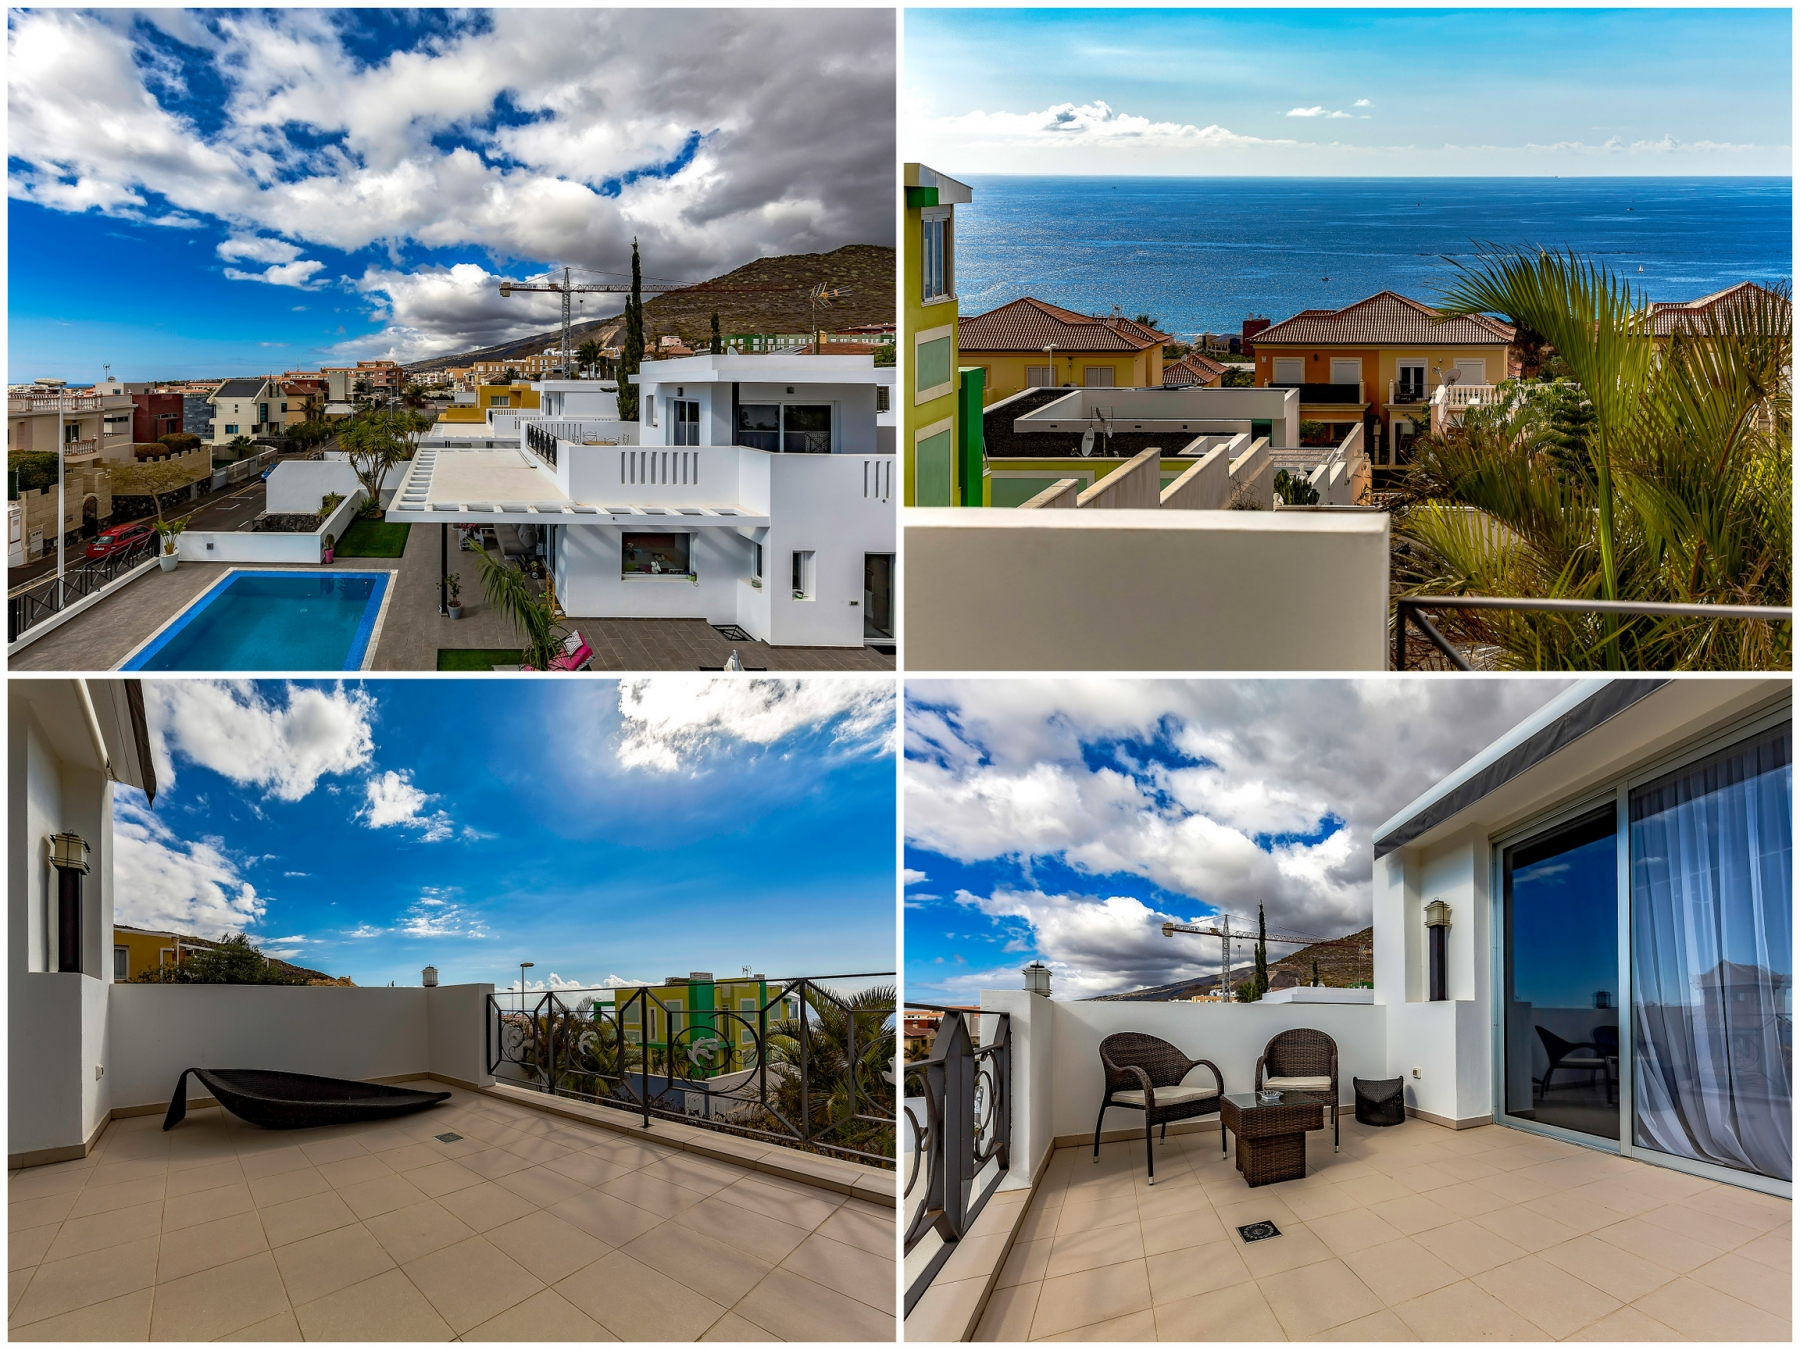 Properties for Sale in Tenerife, Canary Islands, Spain   SylkWayStar Real Estate. Luxury villa in the fashionable area of the south of the island of Tenerife – Madroñal.. Image-22842